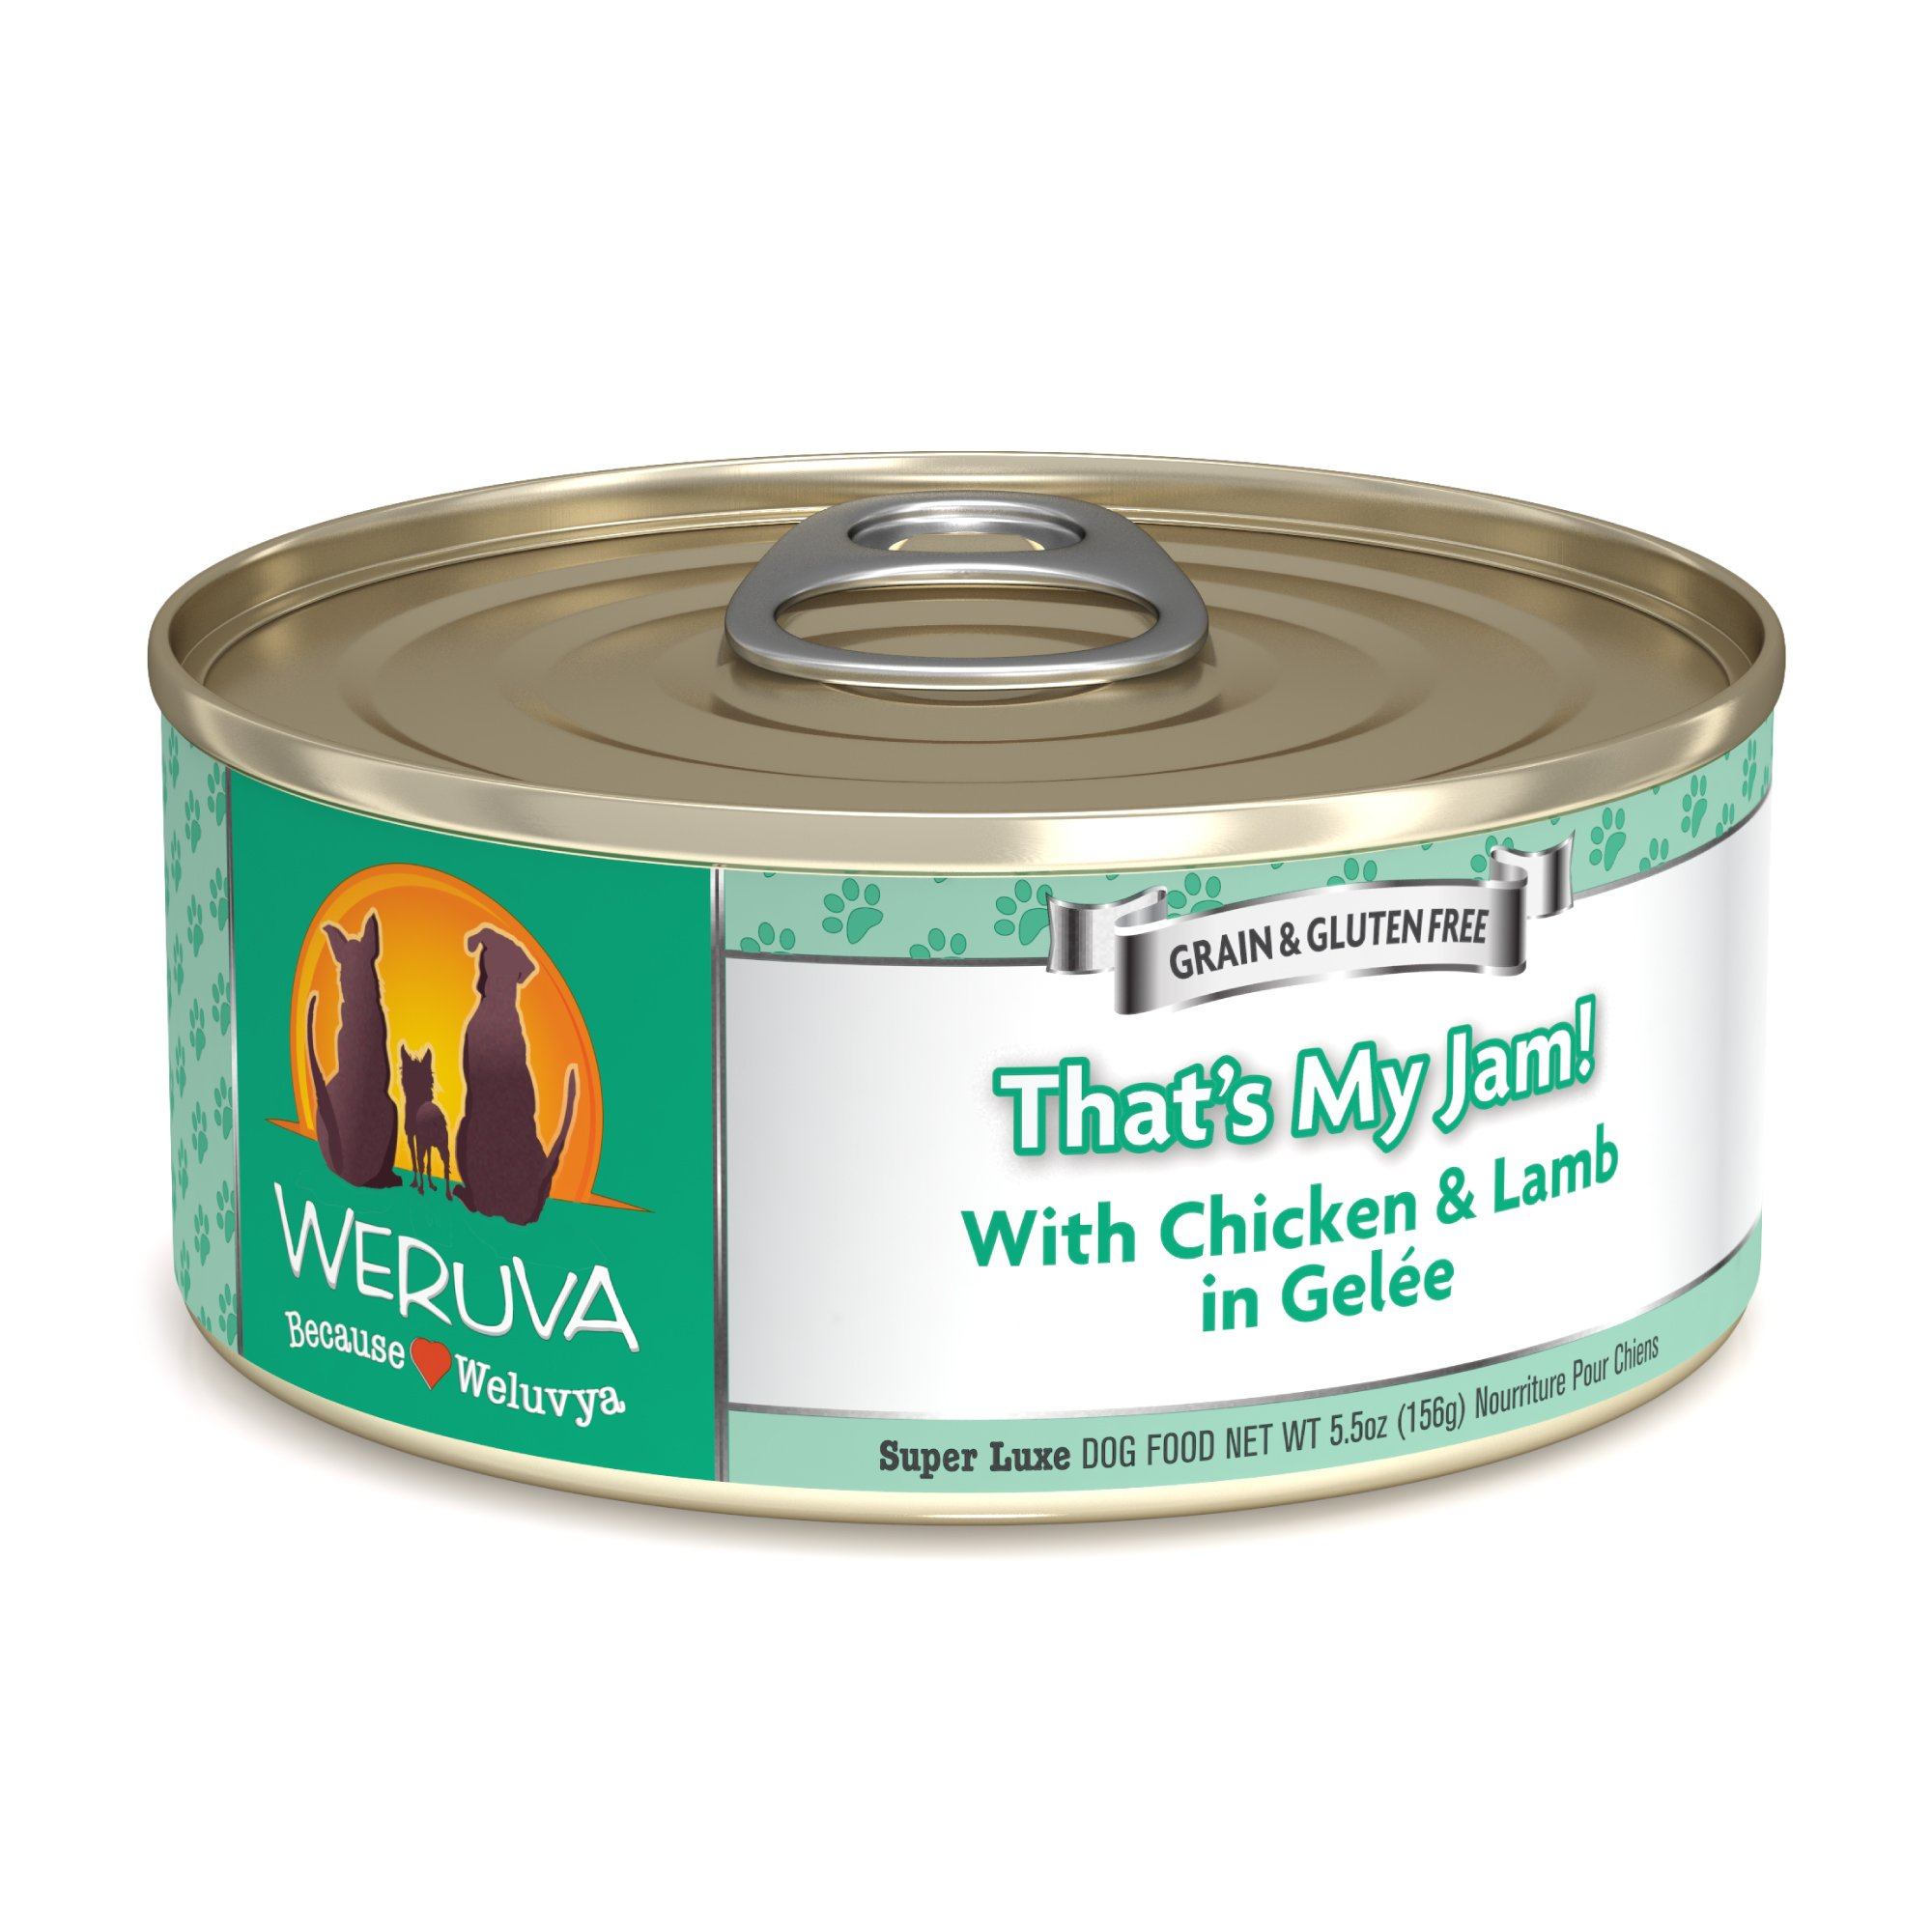 Weruva Classics That's My Jam! With Chicken & Lamb in Gelee Wet Dog Food, 5.5 oz, Case of 24, 24 X 5.5 OZ